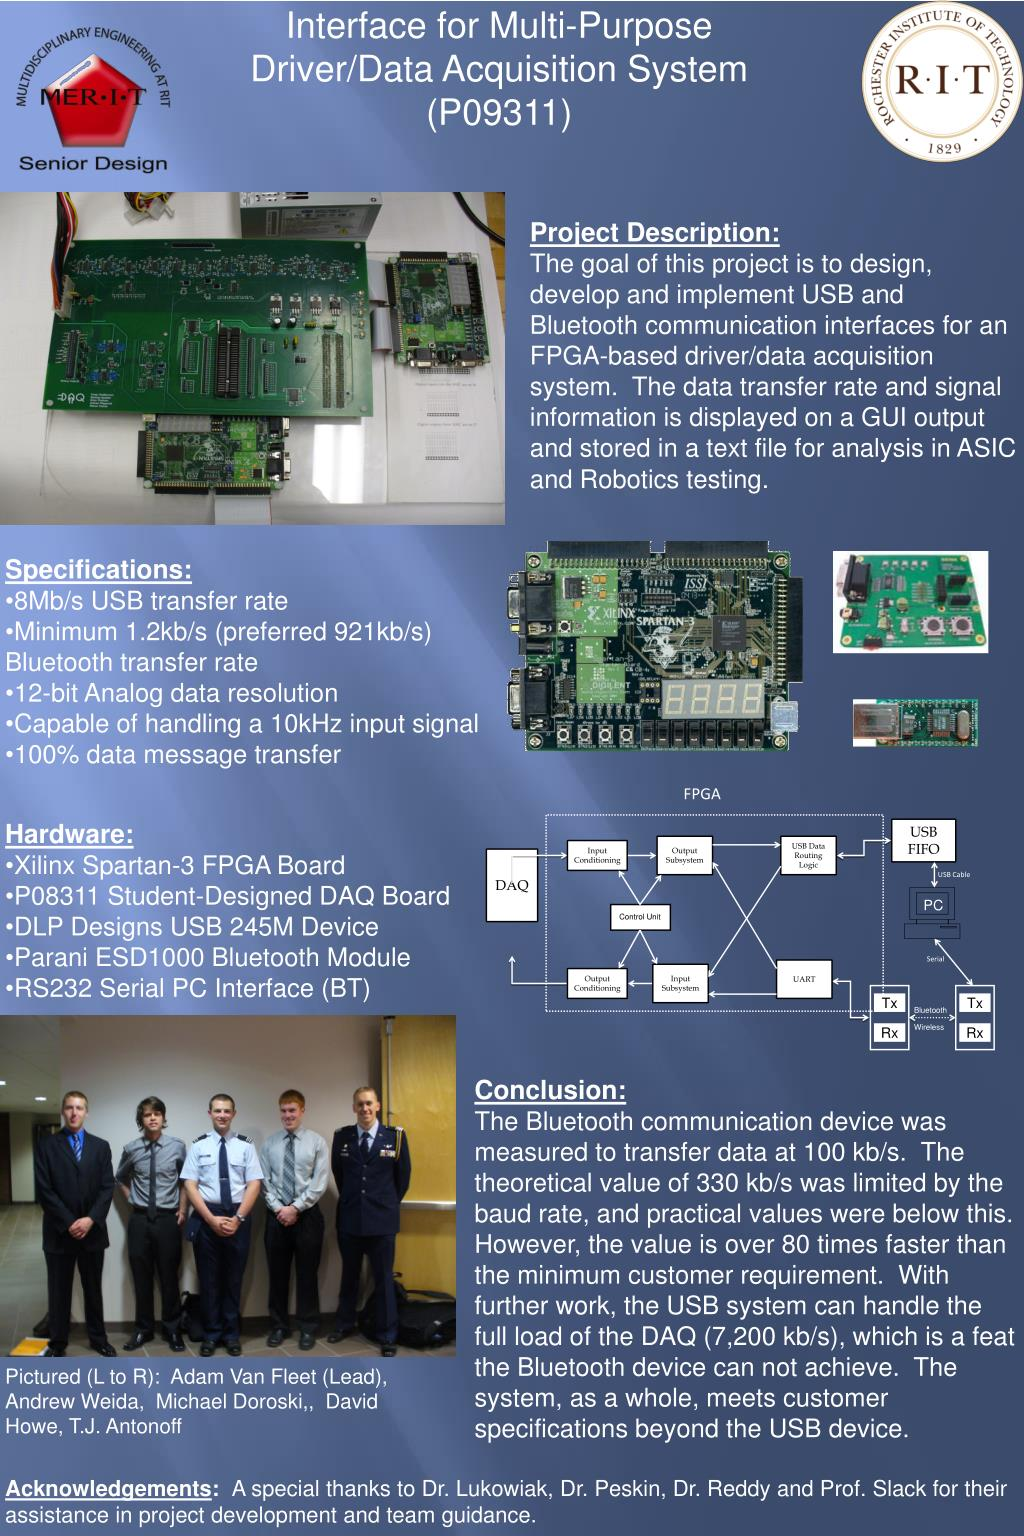 Ppt Interface For Multi Purpose Driver Data Acquisition System P09311 Powerpoint Presentation Id 5558097